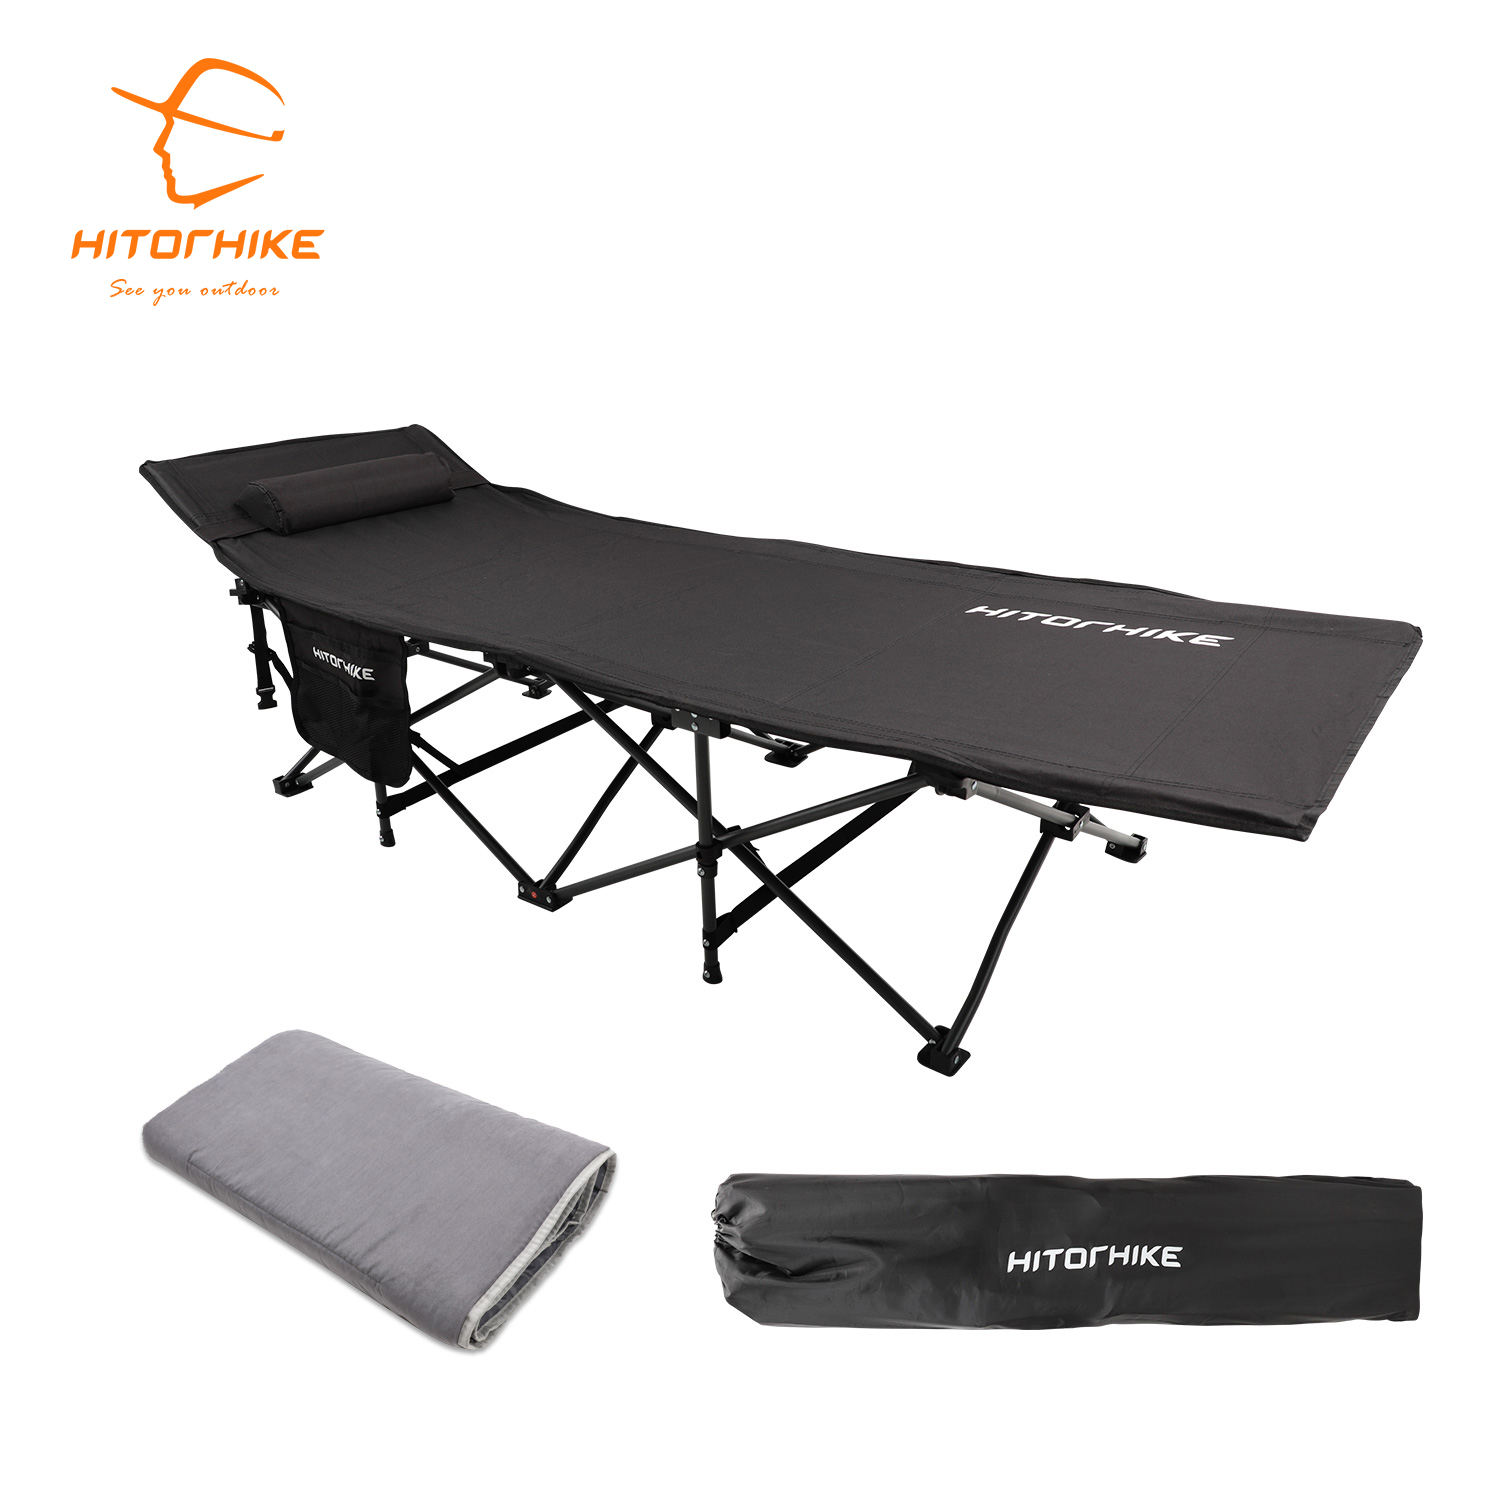 Hitorhike new style iron frame folding camping cot sleeping bed portable outdoor cots